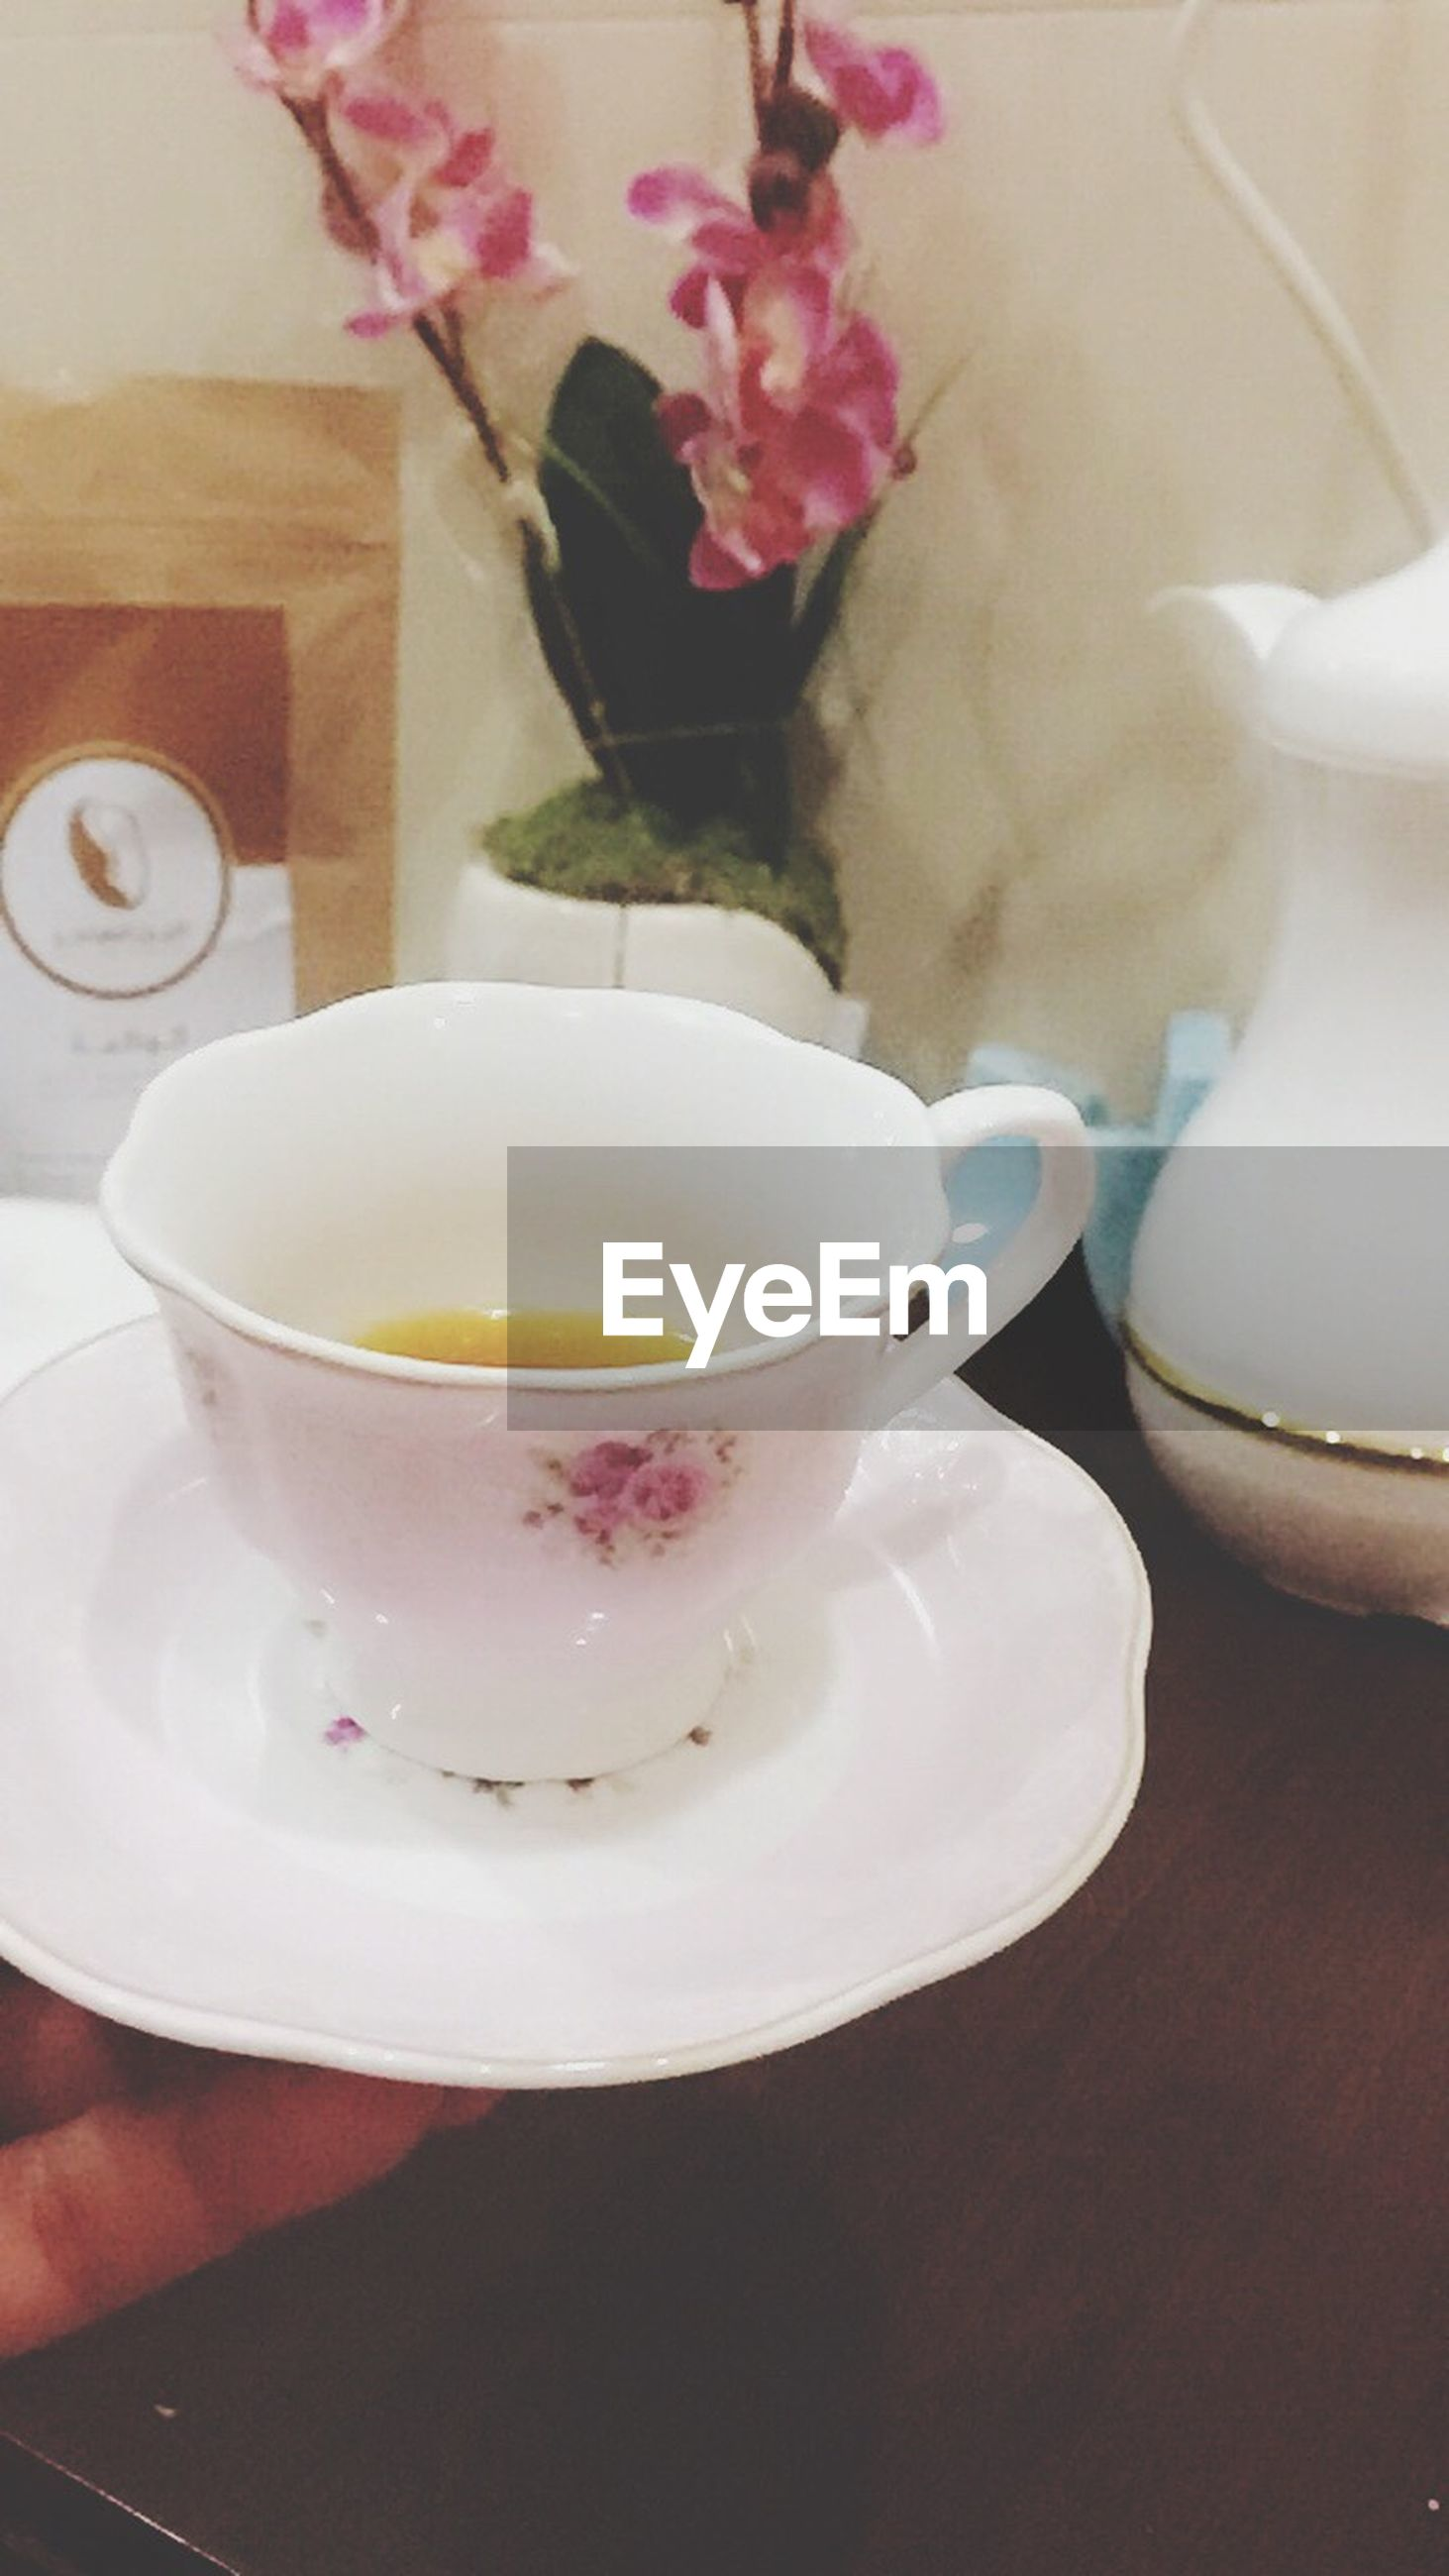 flower, indoors, food and drink, freshness, sweet food, food, close-up, dessert, fragility, plate, no people, drink, table, ready-to-eat, day